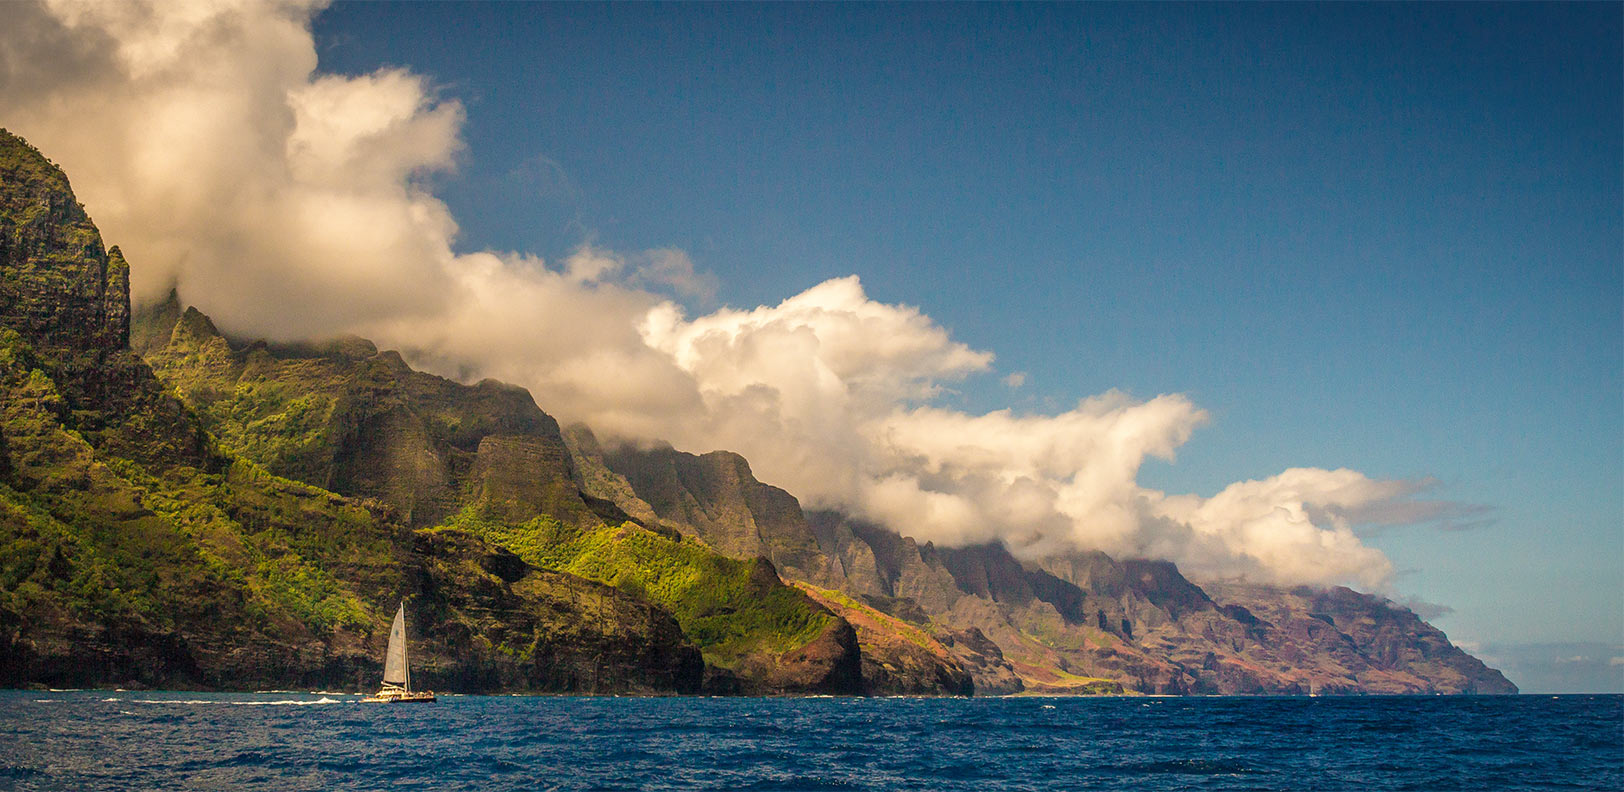 The coastline while visiting Napali